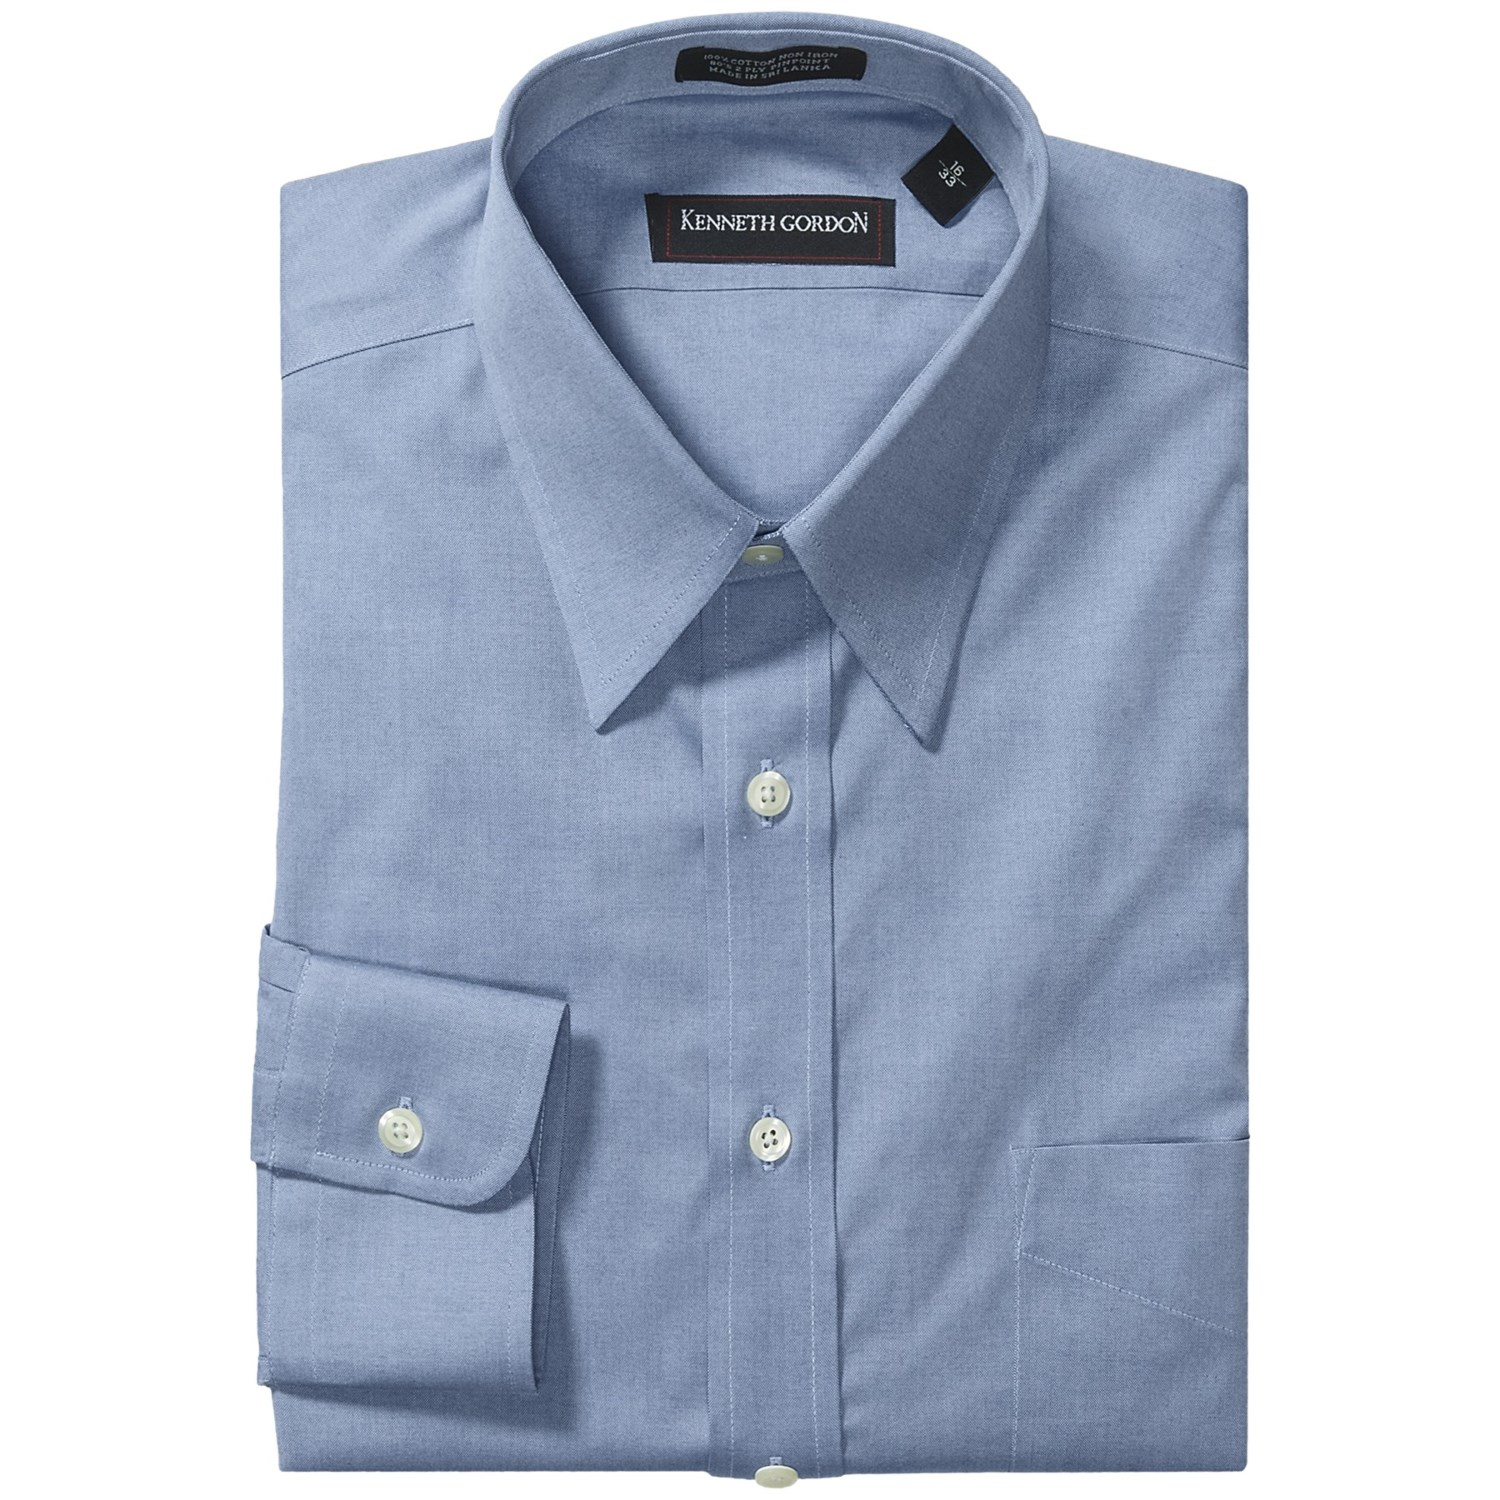 kenneth gordon non iron cotton dress shirt long sleeve